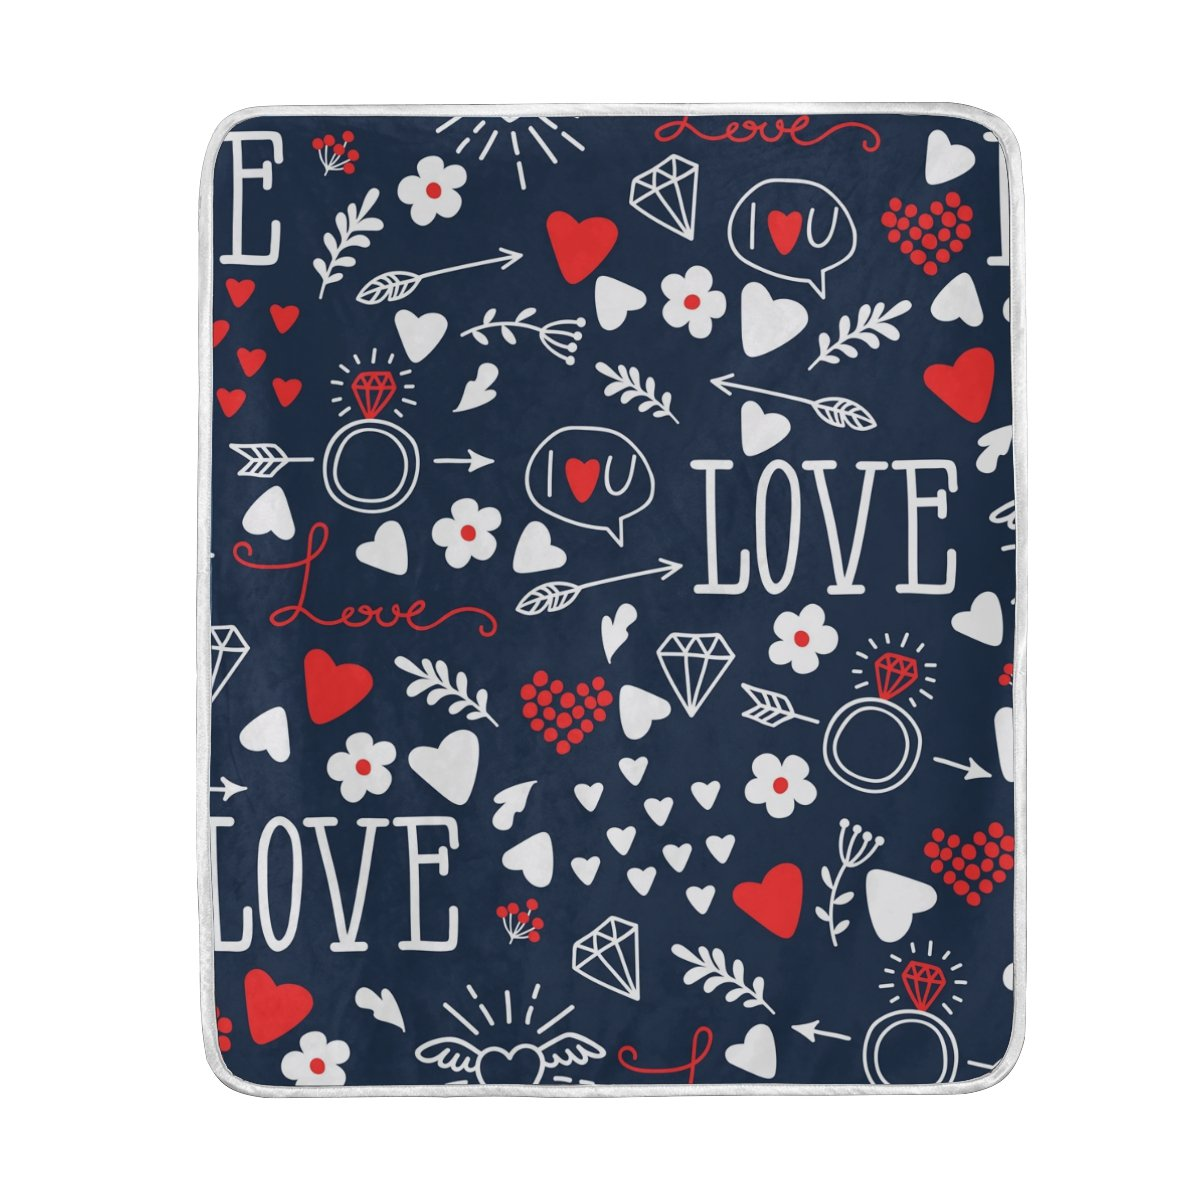 My Little Nest Hearts Arrows Rings Love Cozy Throw Blanket Lightweight MicrofiberSoft Warm Blankets Everyday Use for Bed Couch Sofa 50'' x 60''